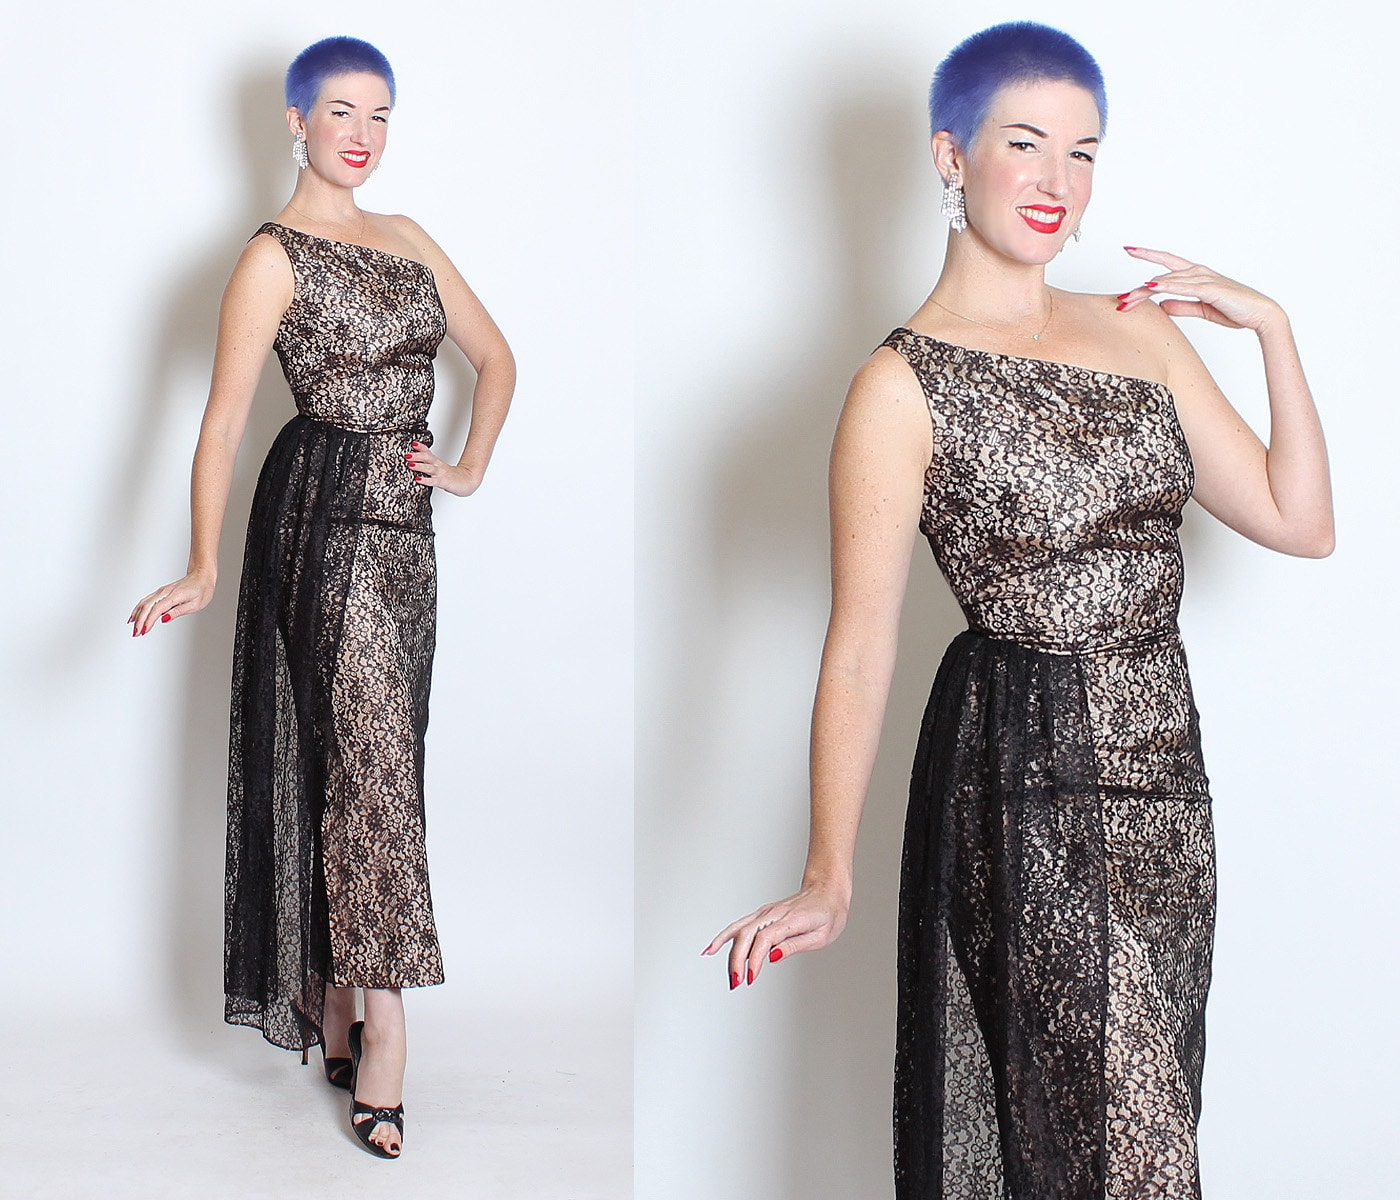 BOMBSHELL 1950's Black Floral Lace Over Nude Satin One Shoulder Hourglass Risque